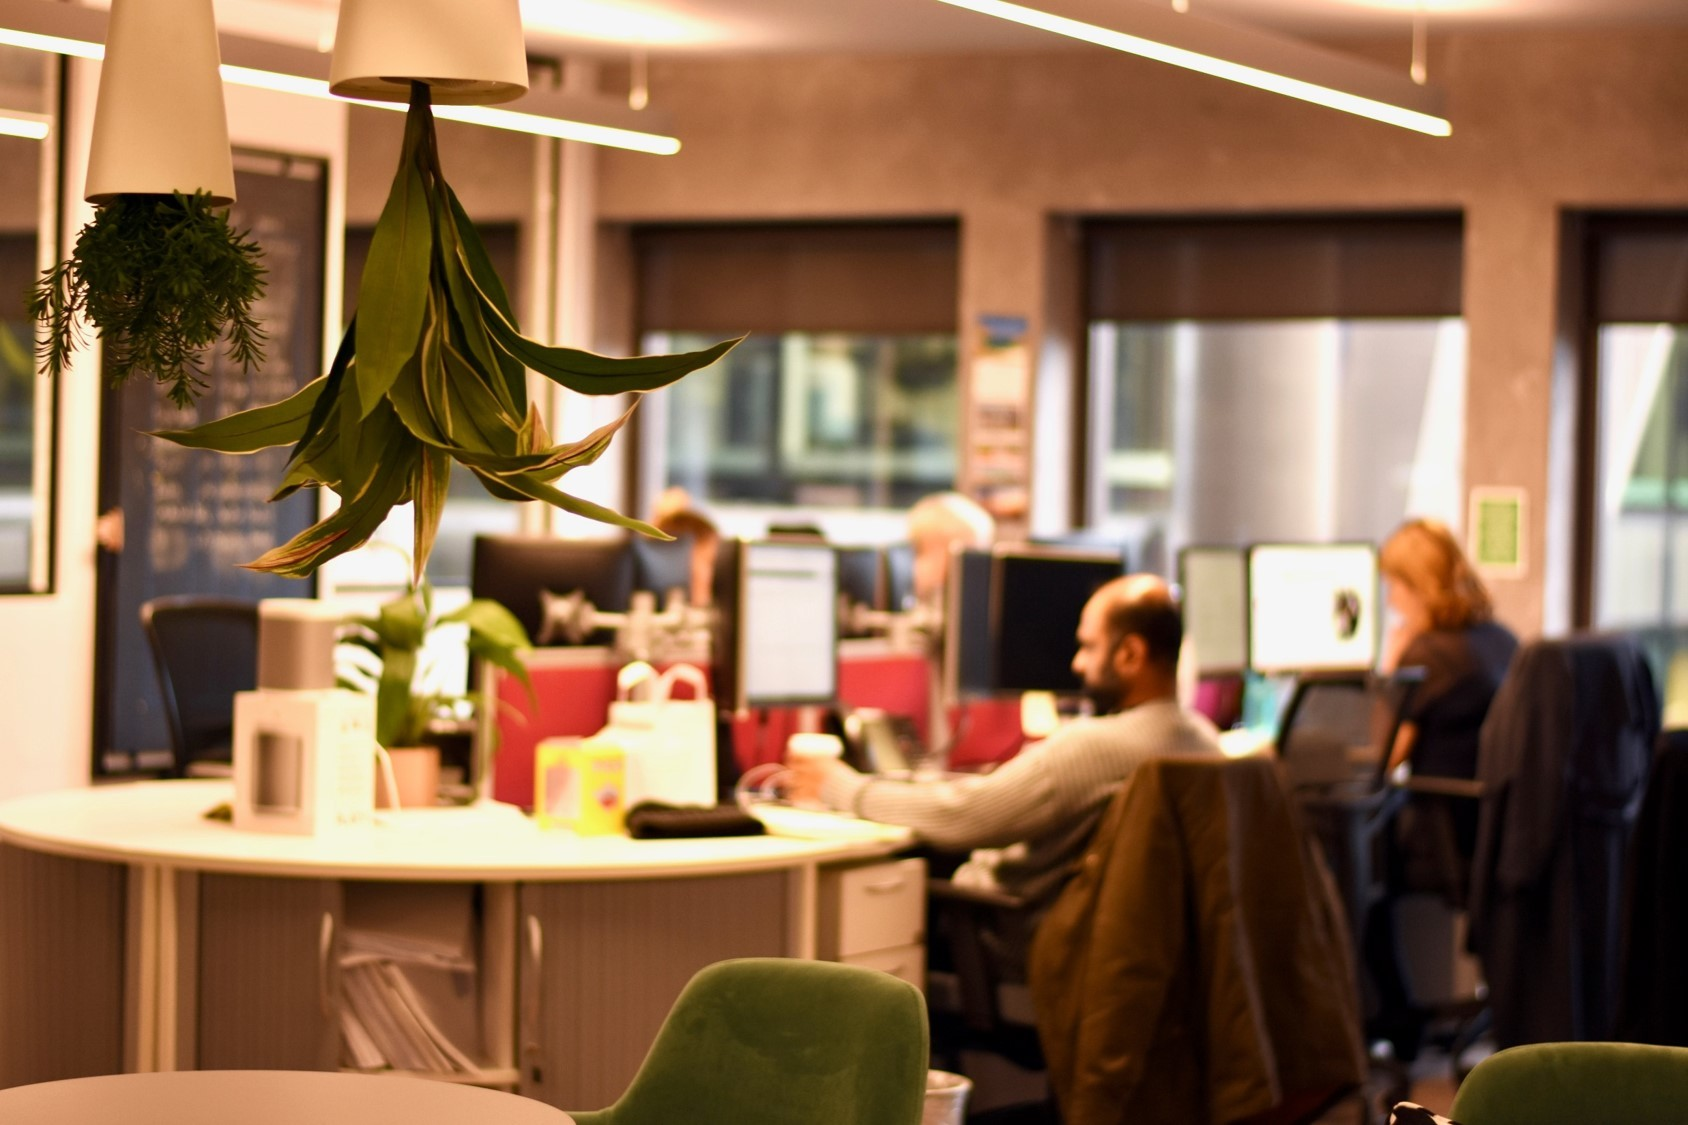 Warm lighting in InterQuest Group's office upside-down plants round desks